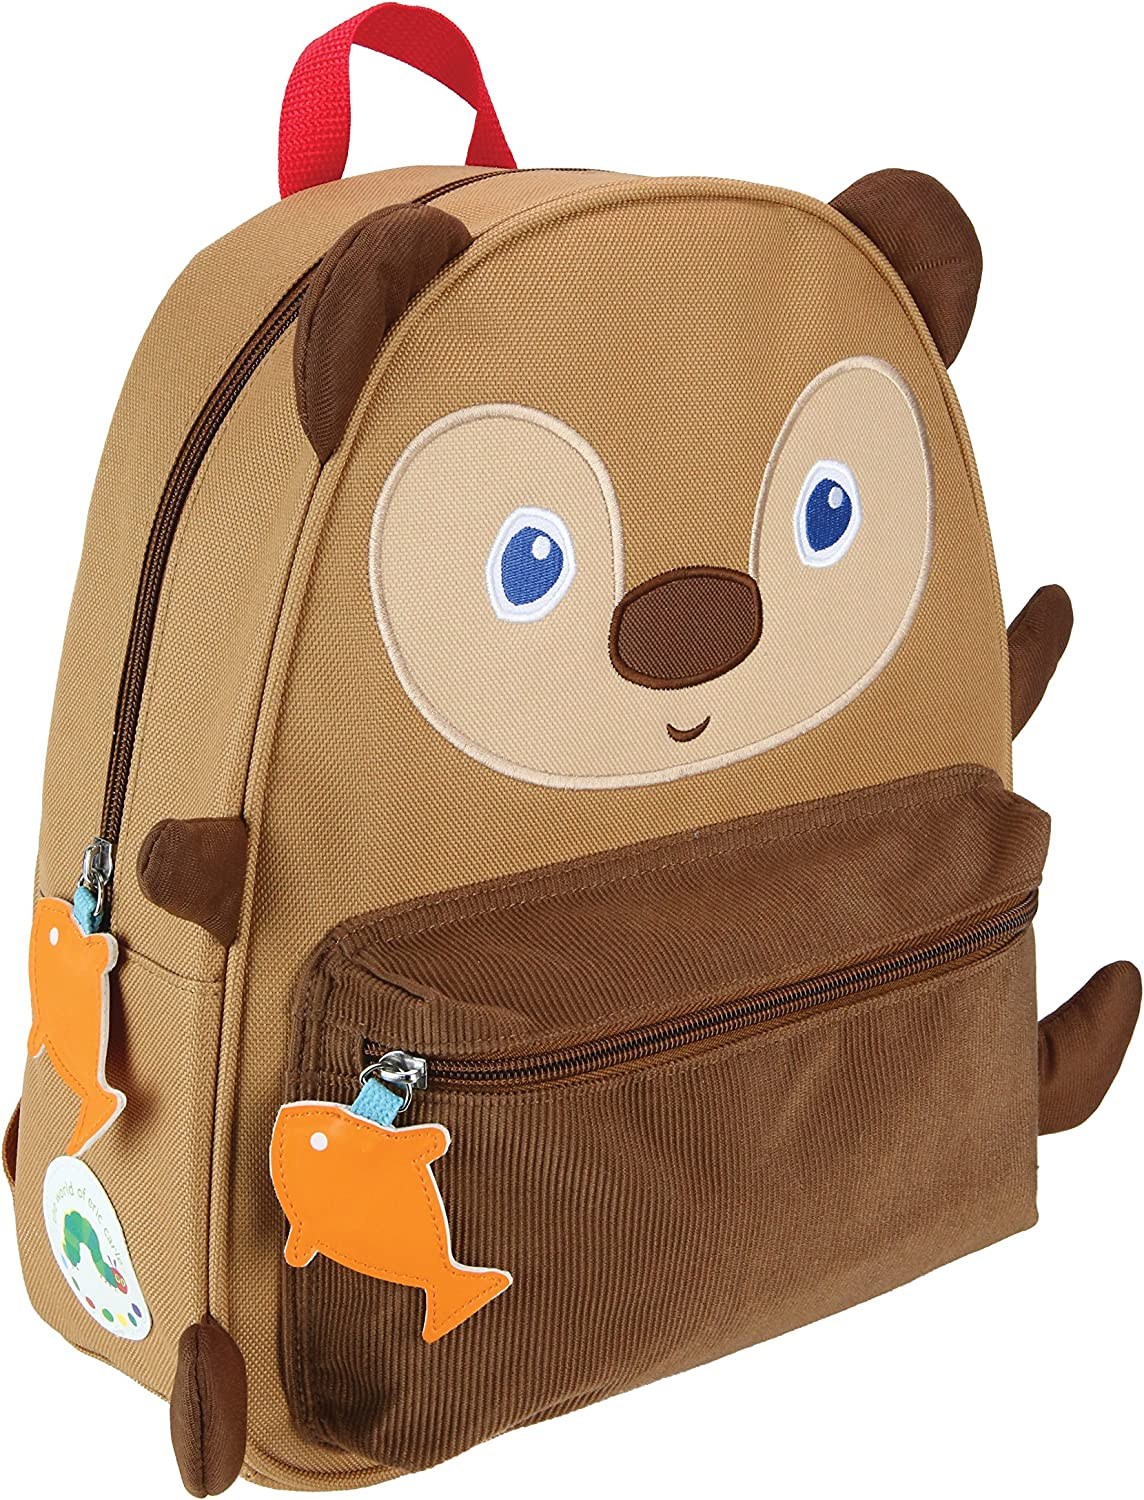 World of Eric Carle, The Very Hungry Caterpillar Brown Bear Backpack Canvas Toy